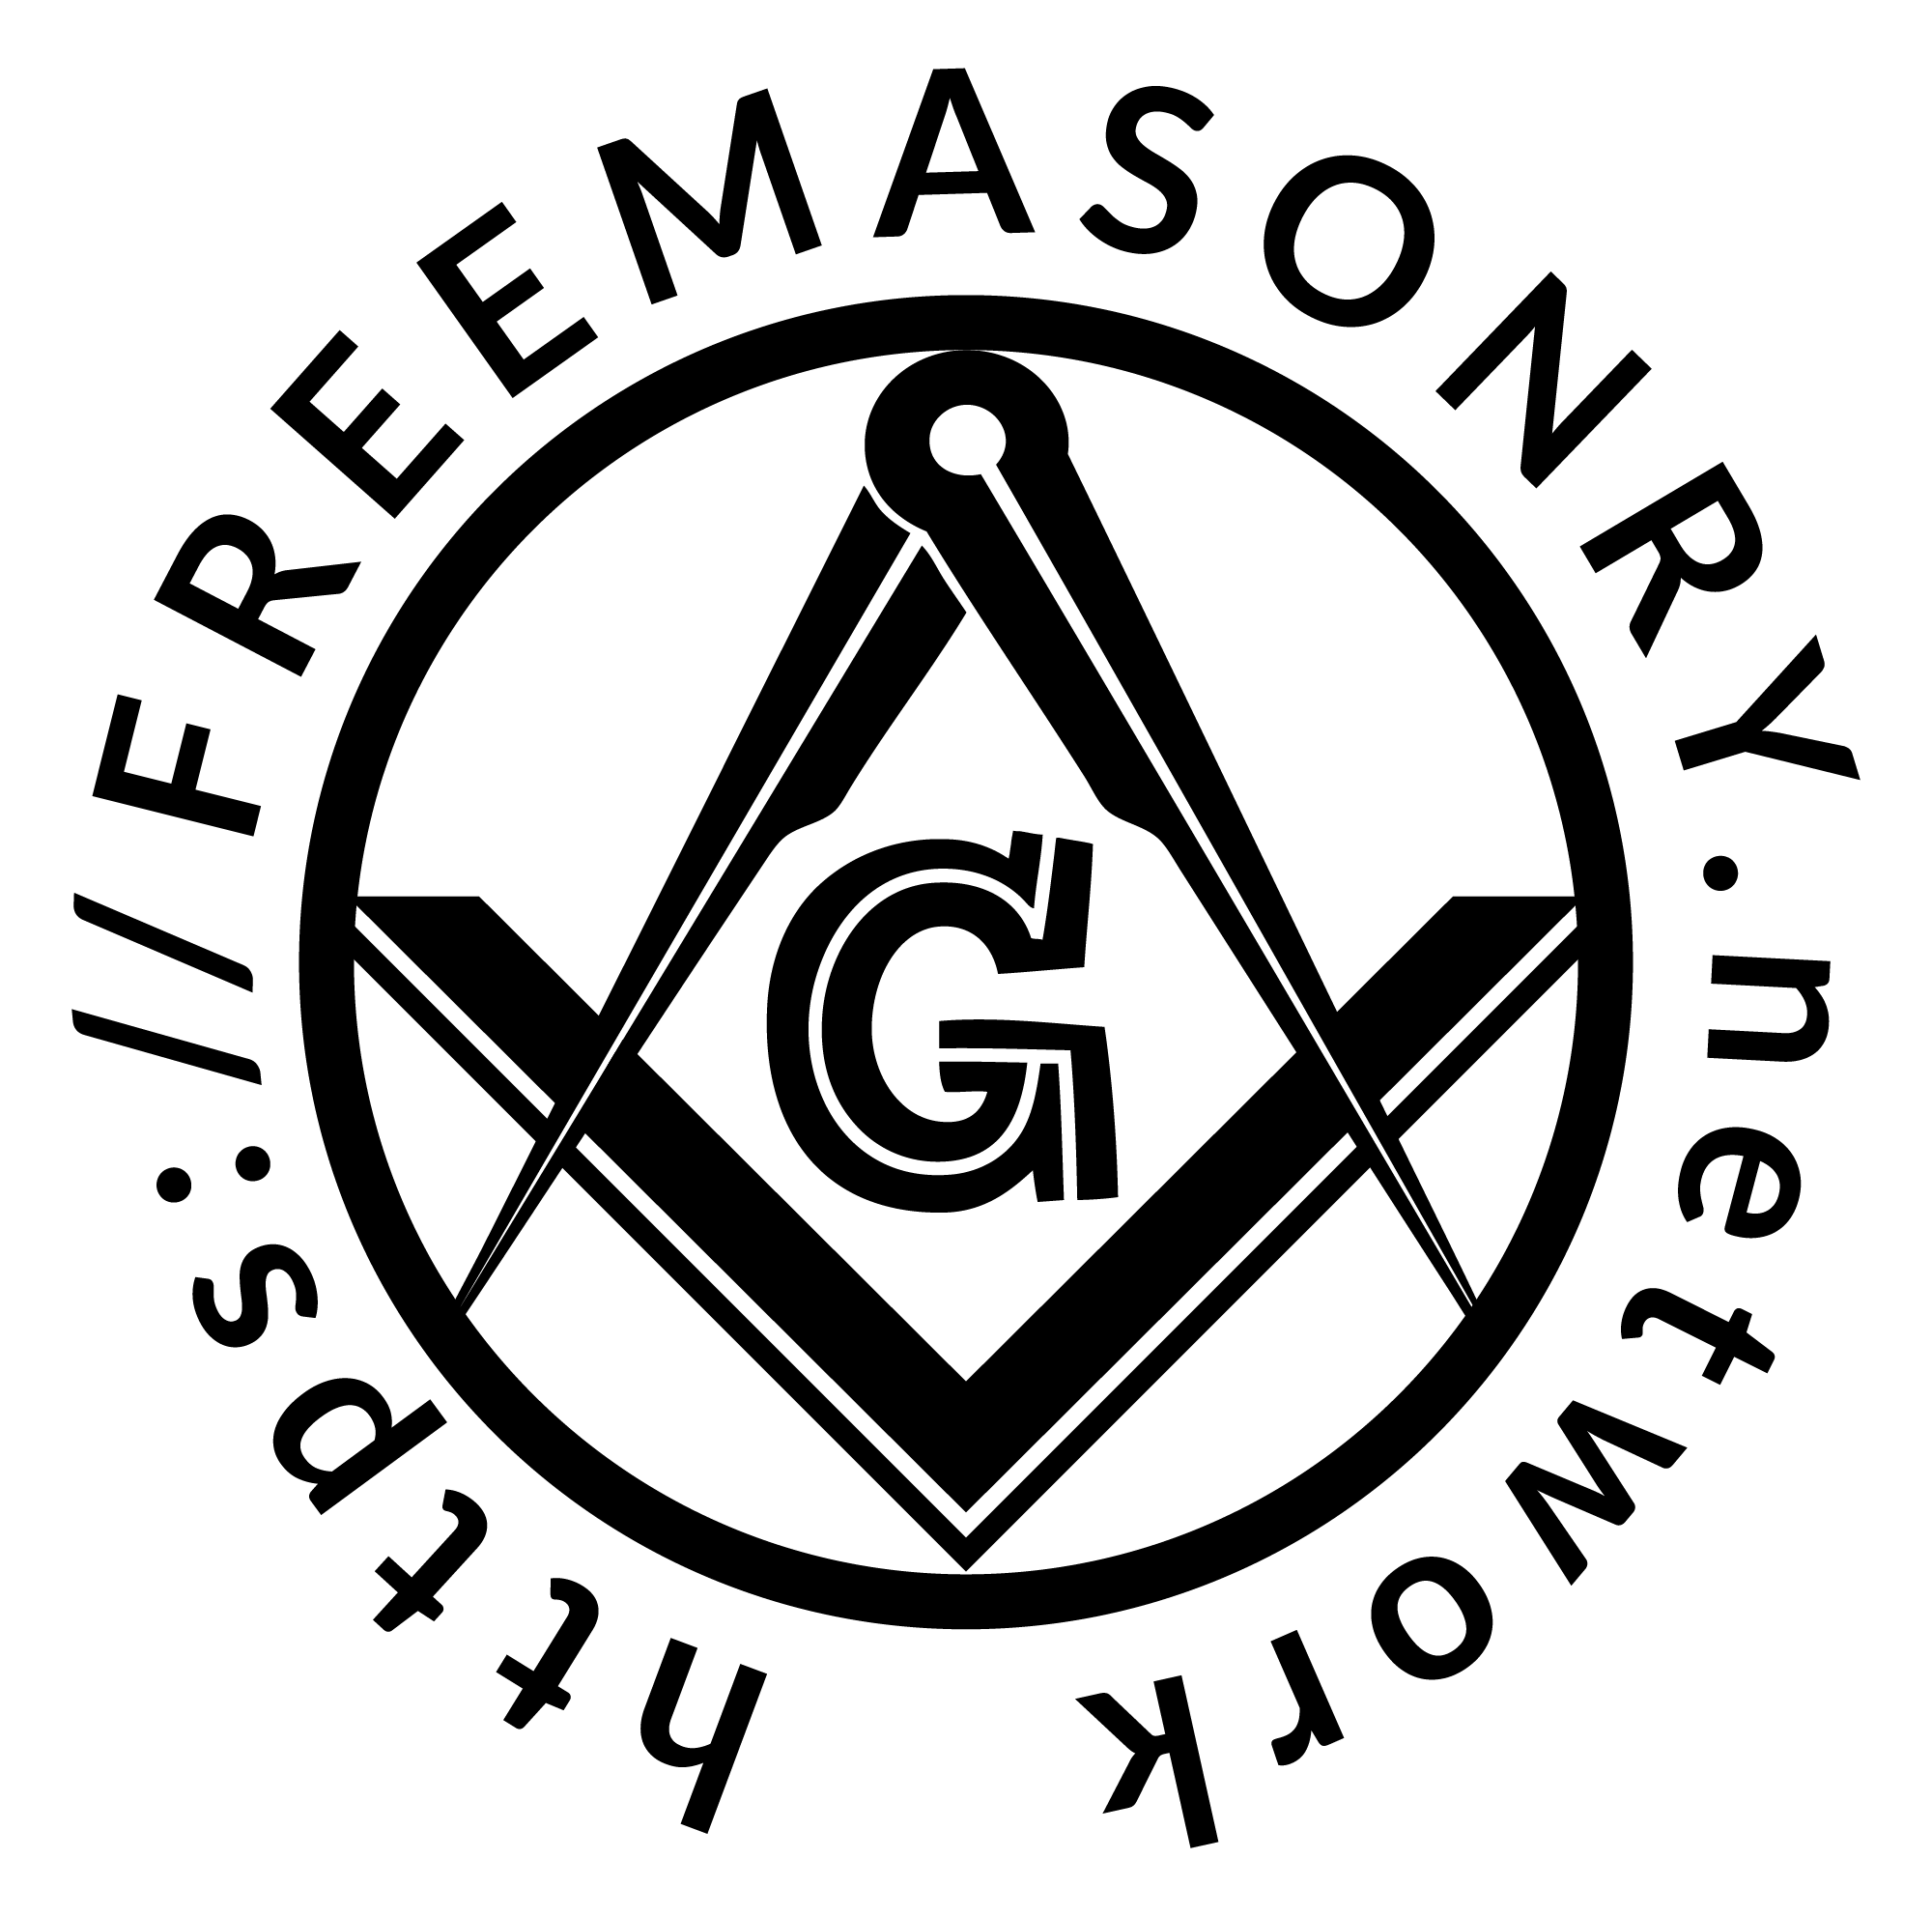 SOCIAL MEDIA ETIQUETTE AND FREEMASONRY